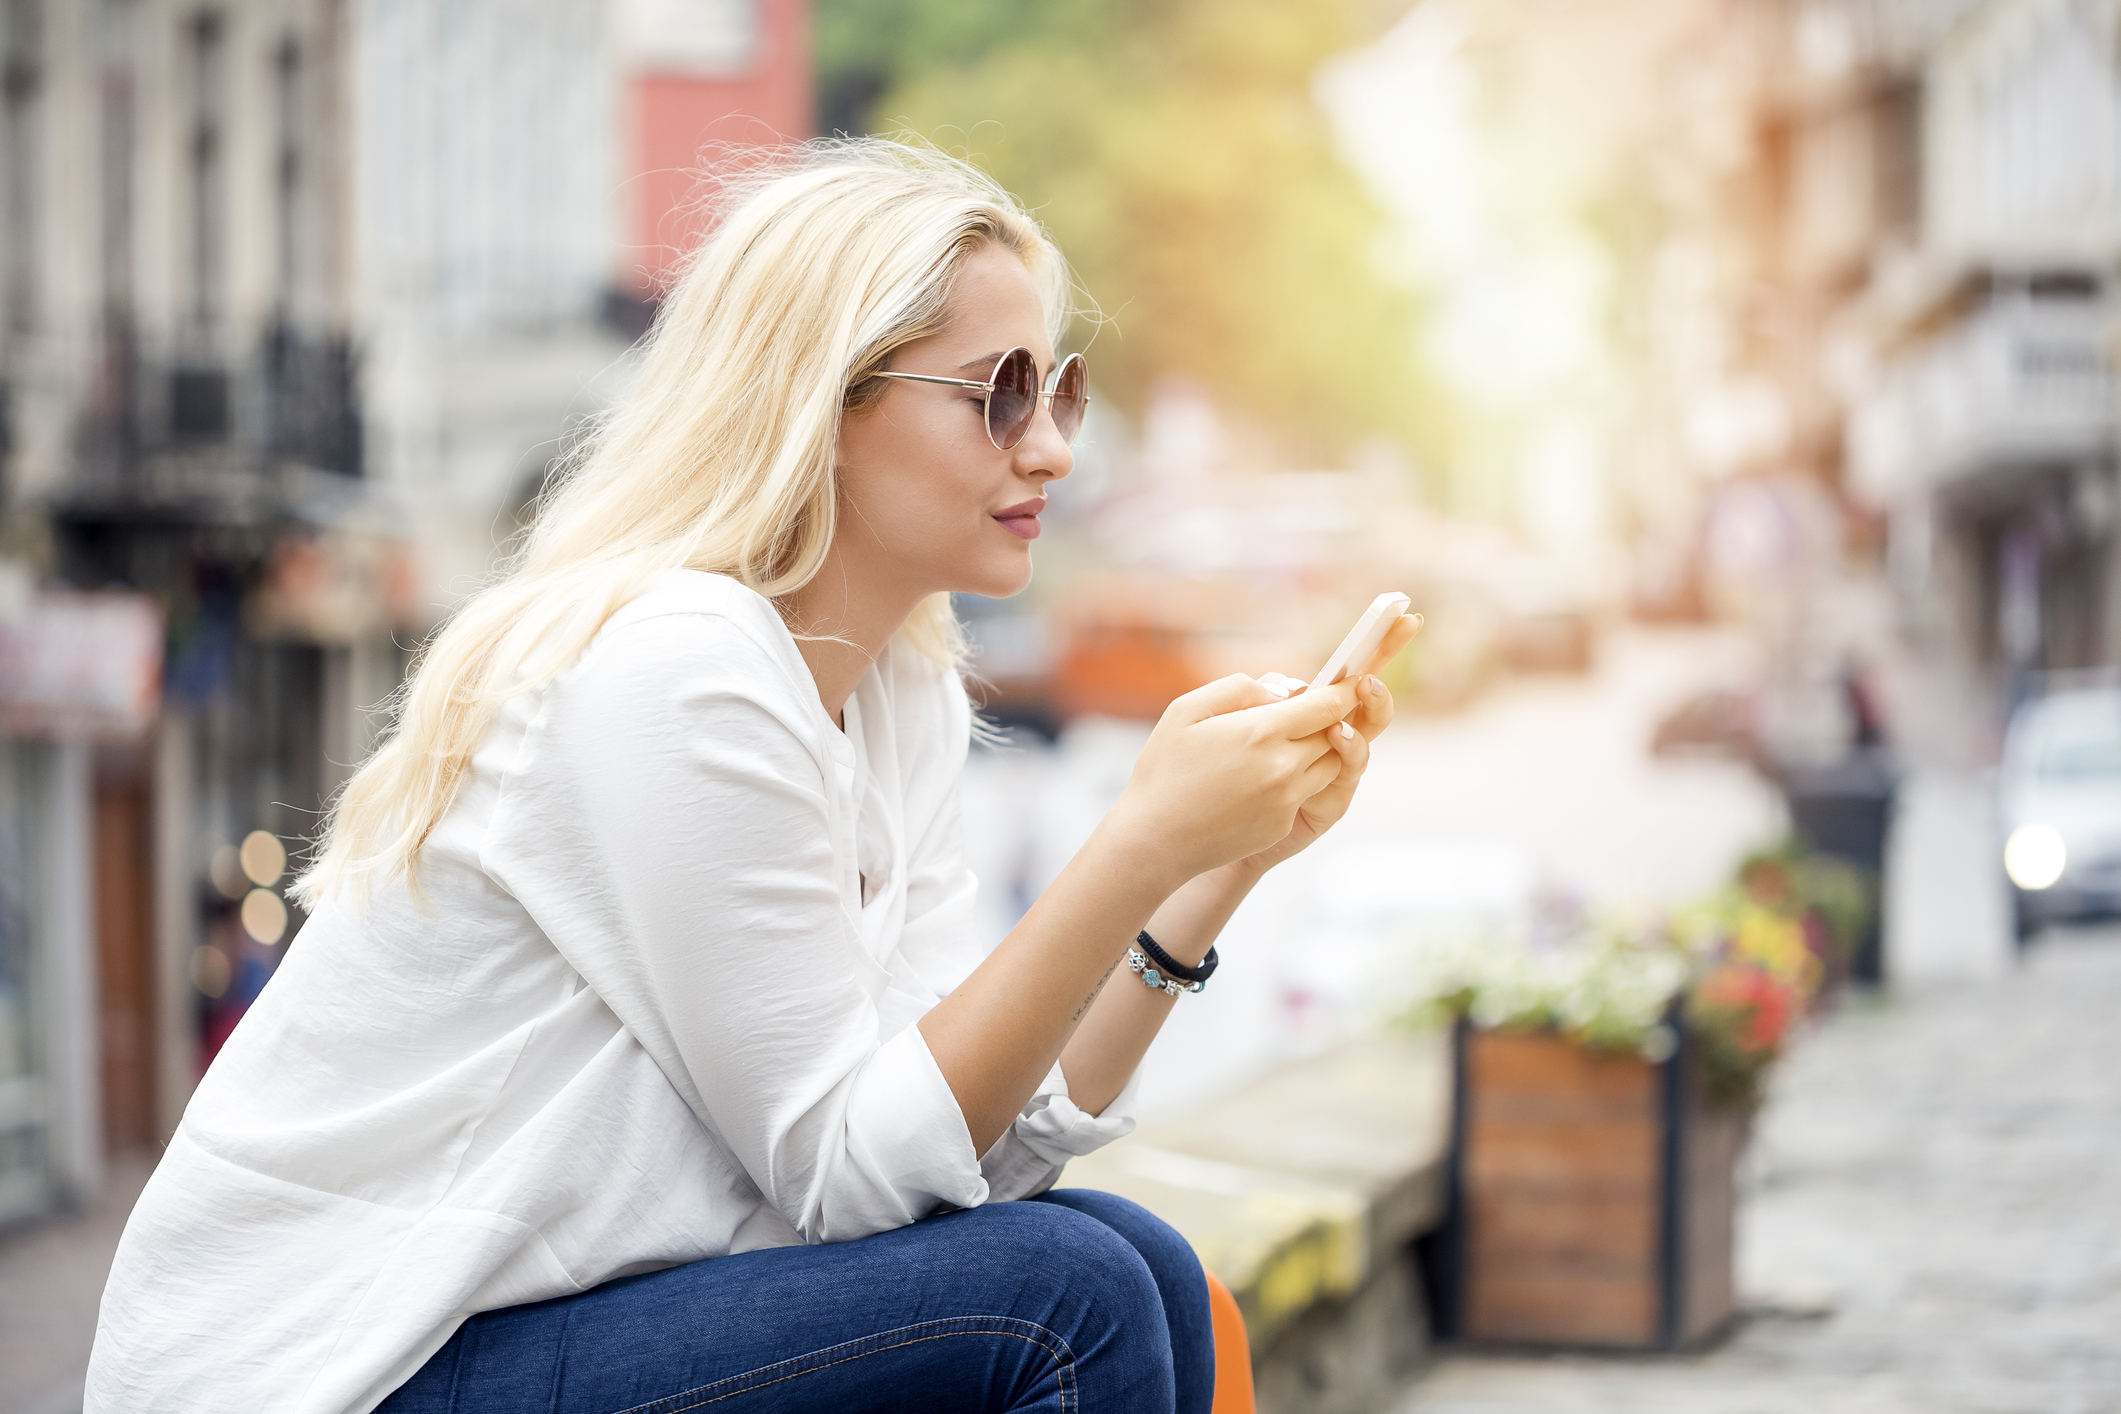 Young woman smiling with smartphone in hand